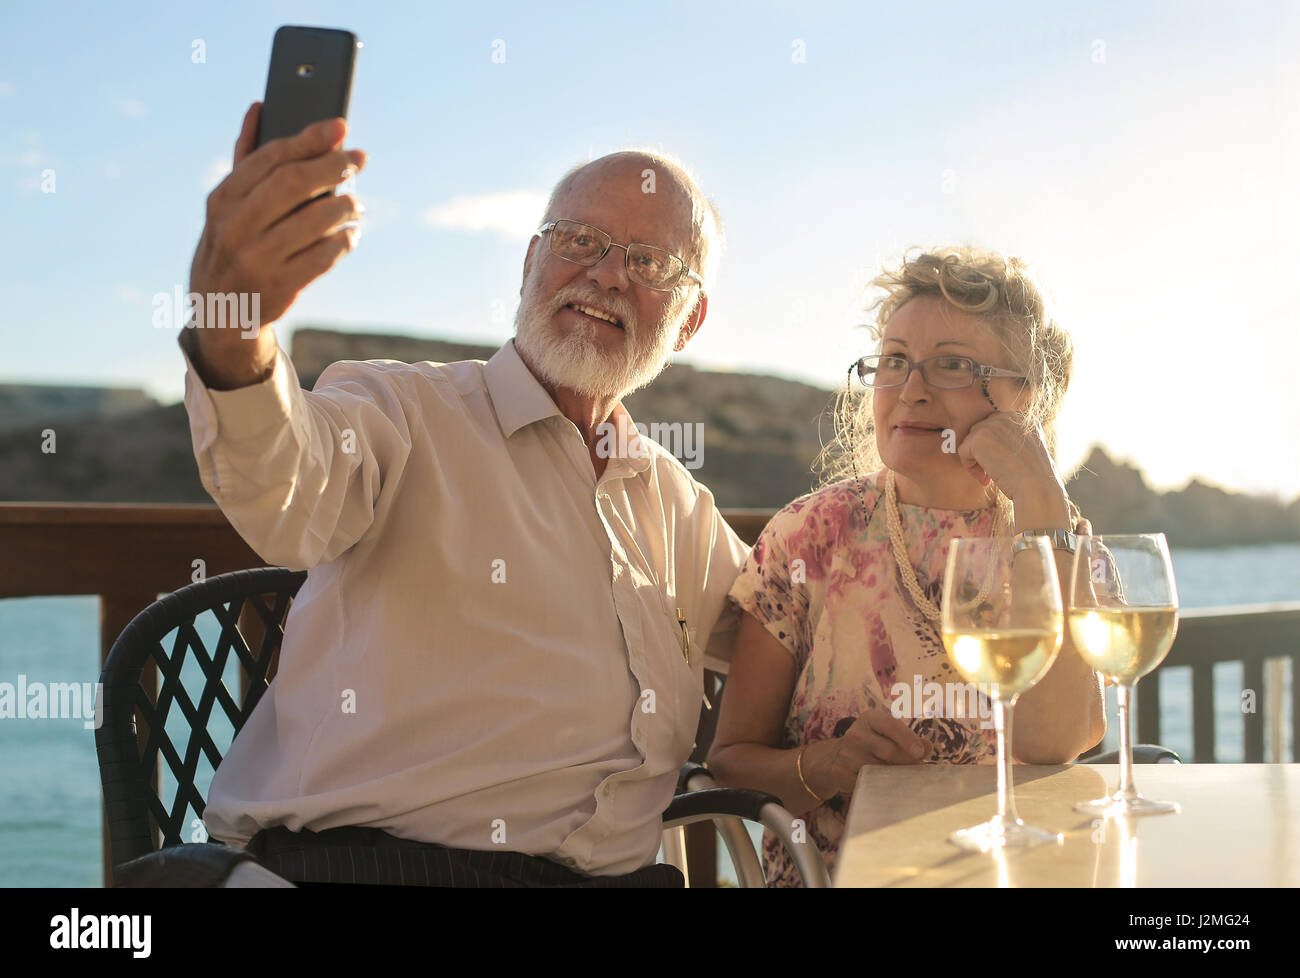 Old couple taking a selfie outside - Stock Image